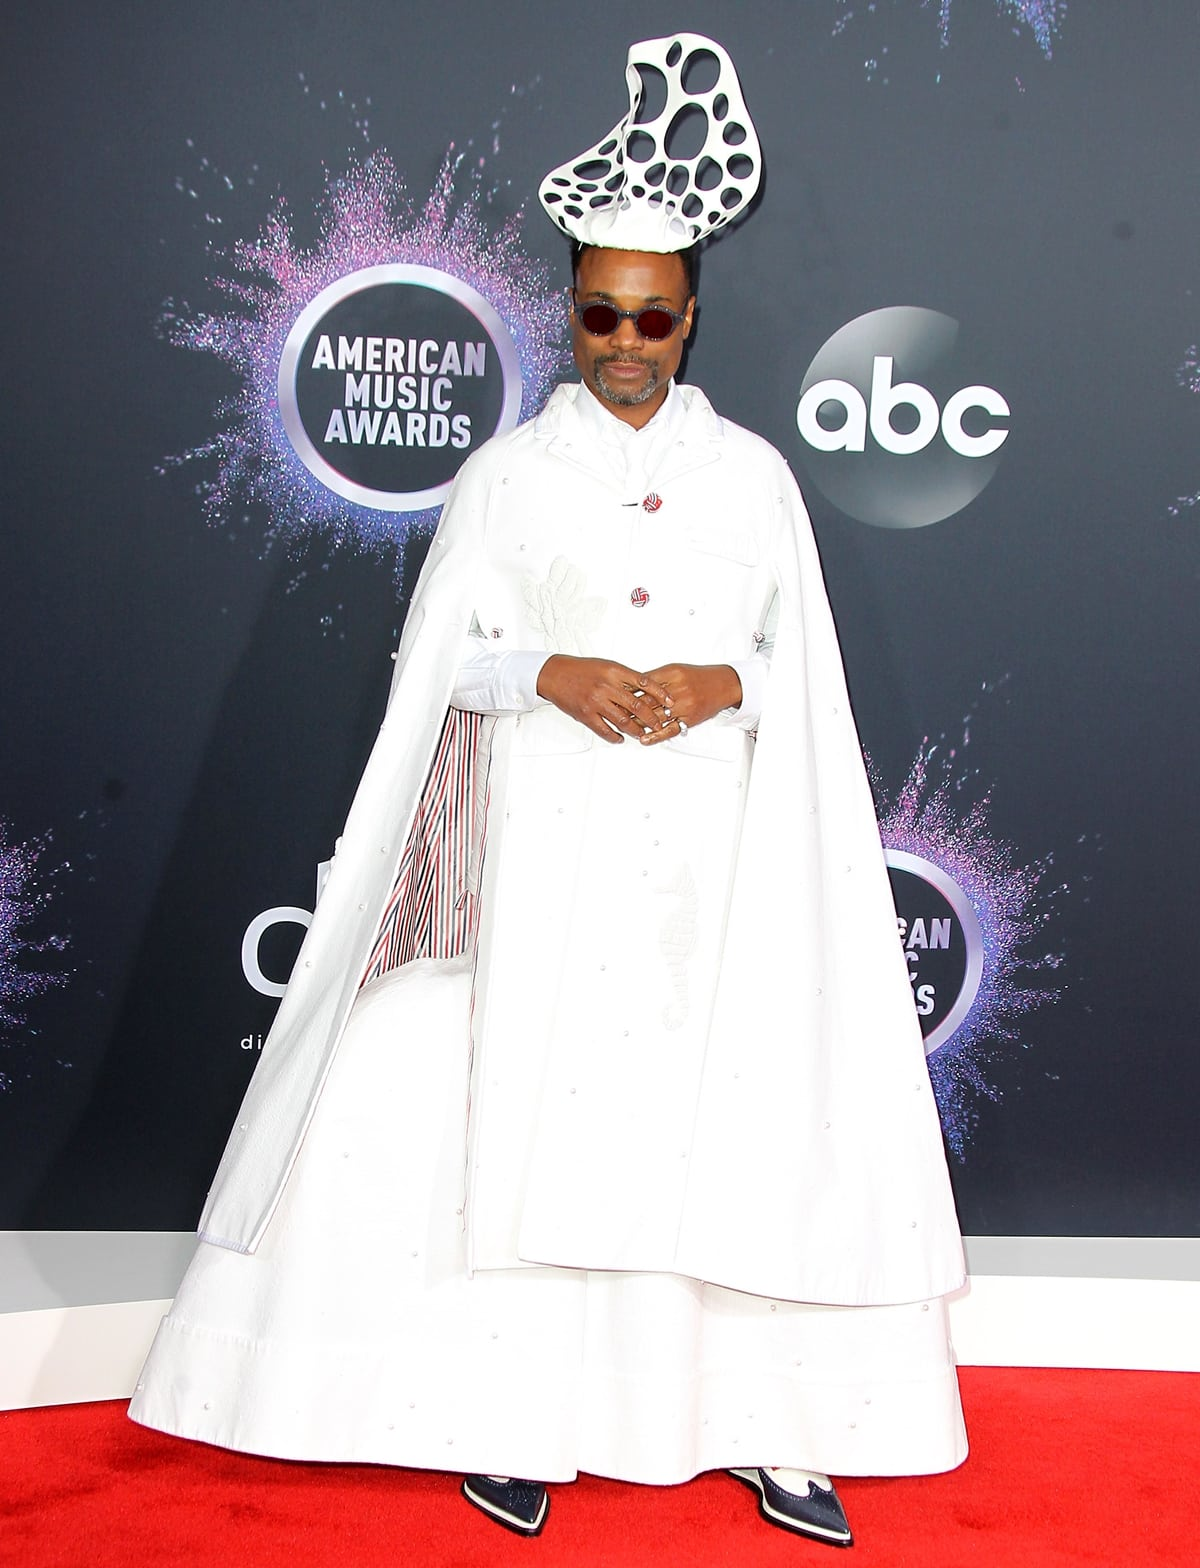 Billy Porter in a white outfit from Thom Browne's Spring 2020 collection a and cutout headpiece from Stephen Jones Millinery at the 47th American Music Awards